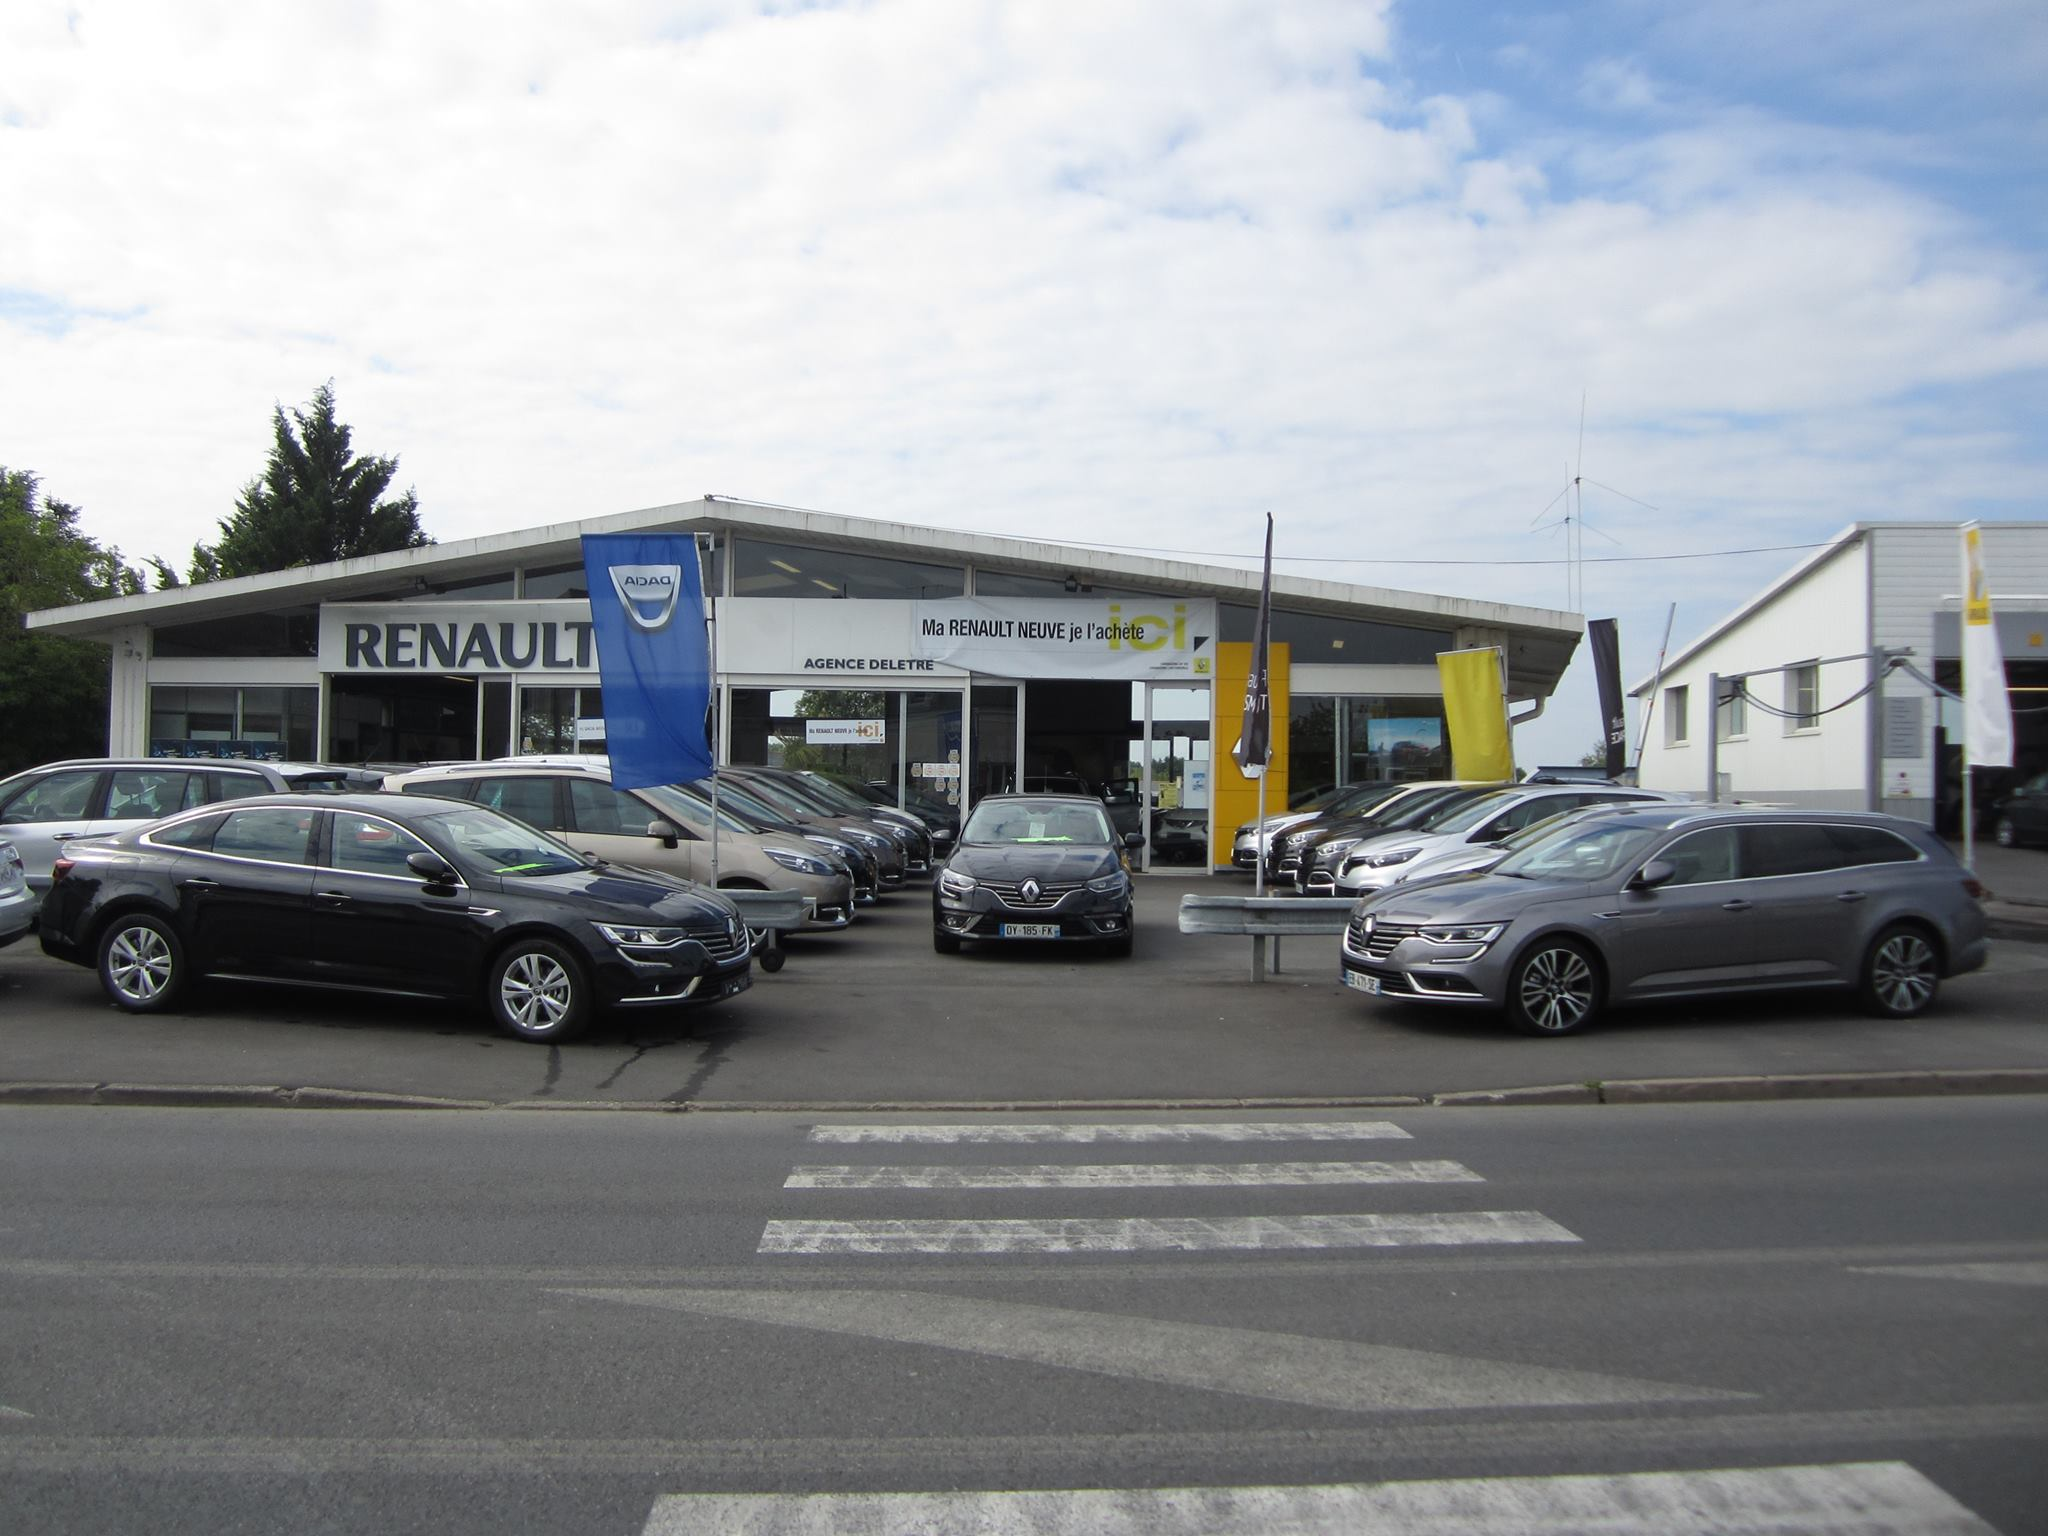 Garage deletre voiture occasion saint georges sur loire for Garage auto bussy saint georges